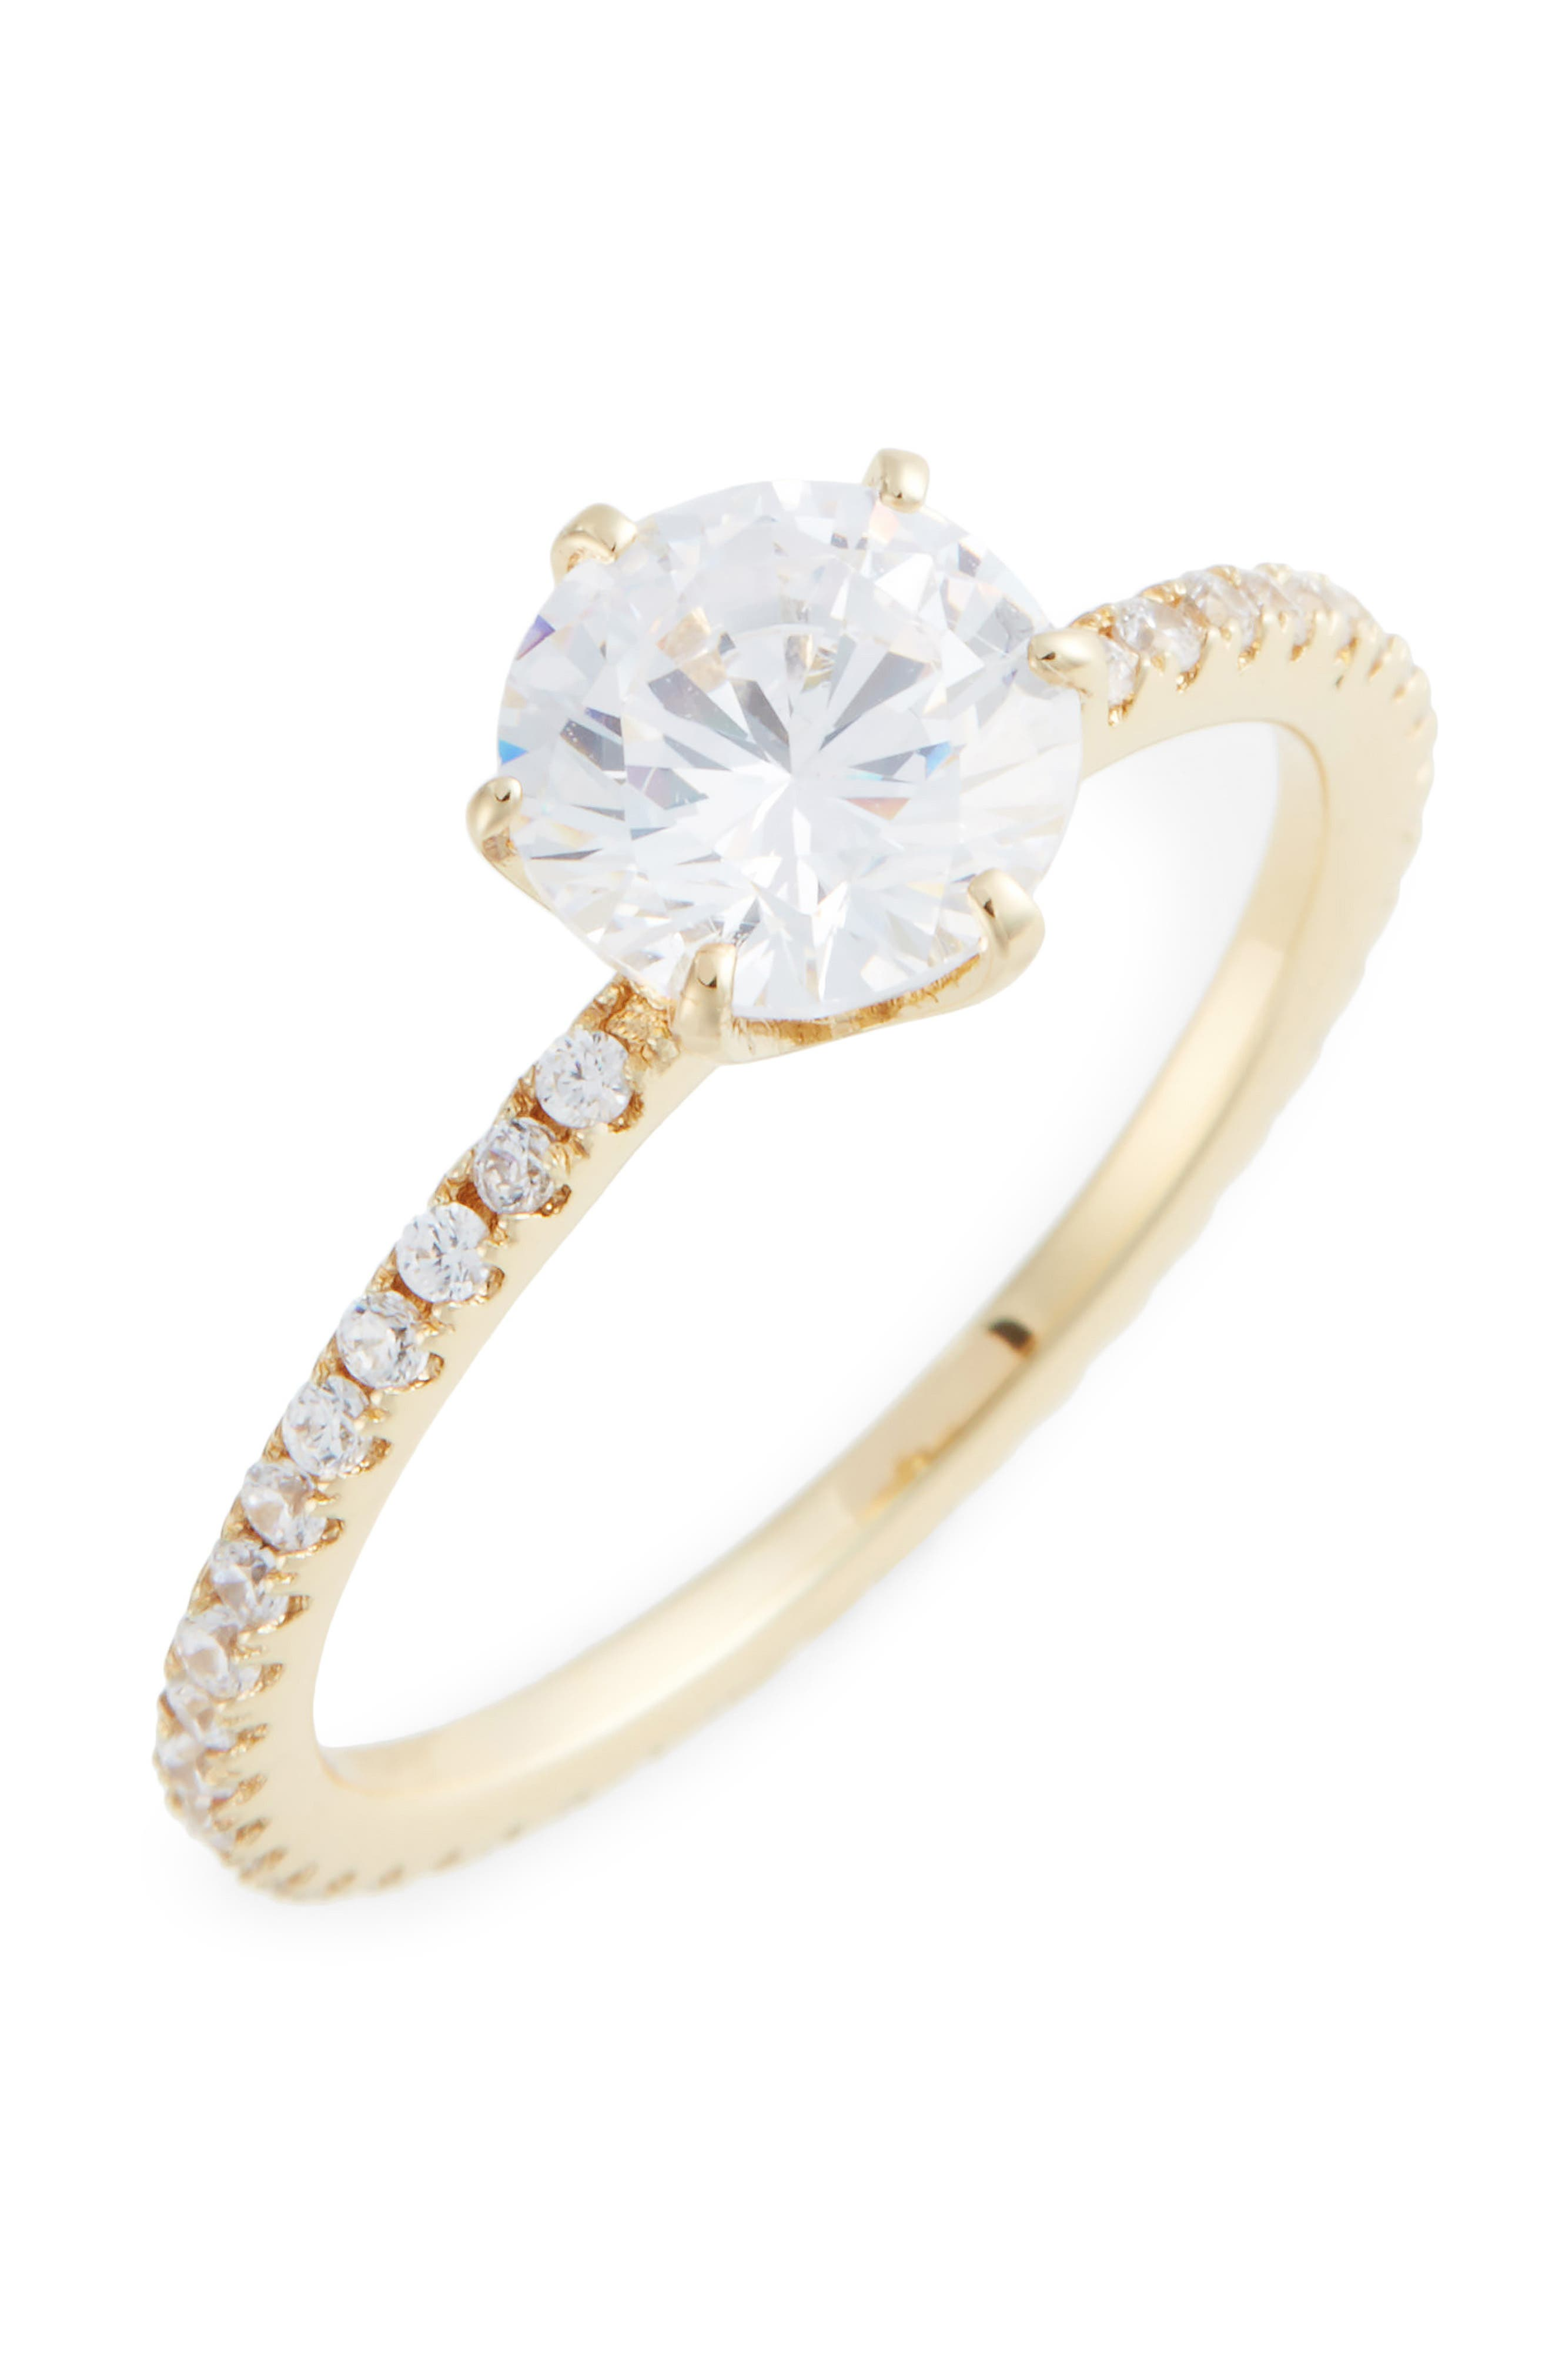 Solitaire Pavé Cocktail Ring,                             Main thumbnail 1, color,                             710